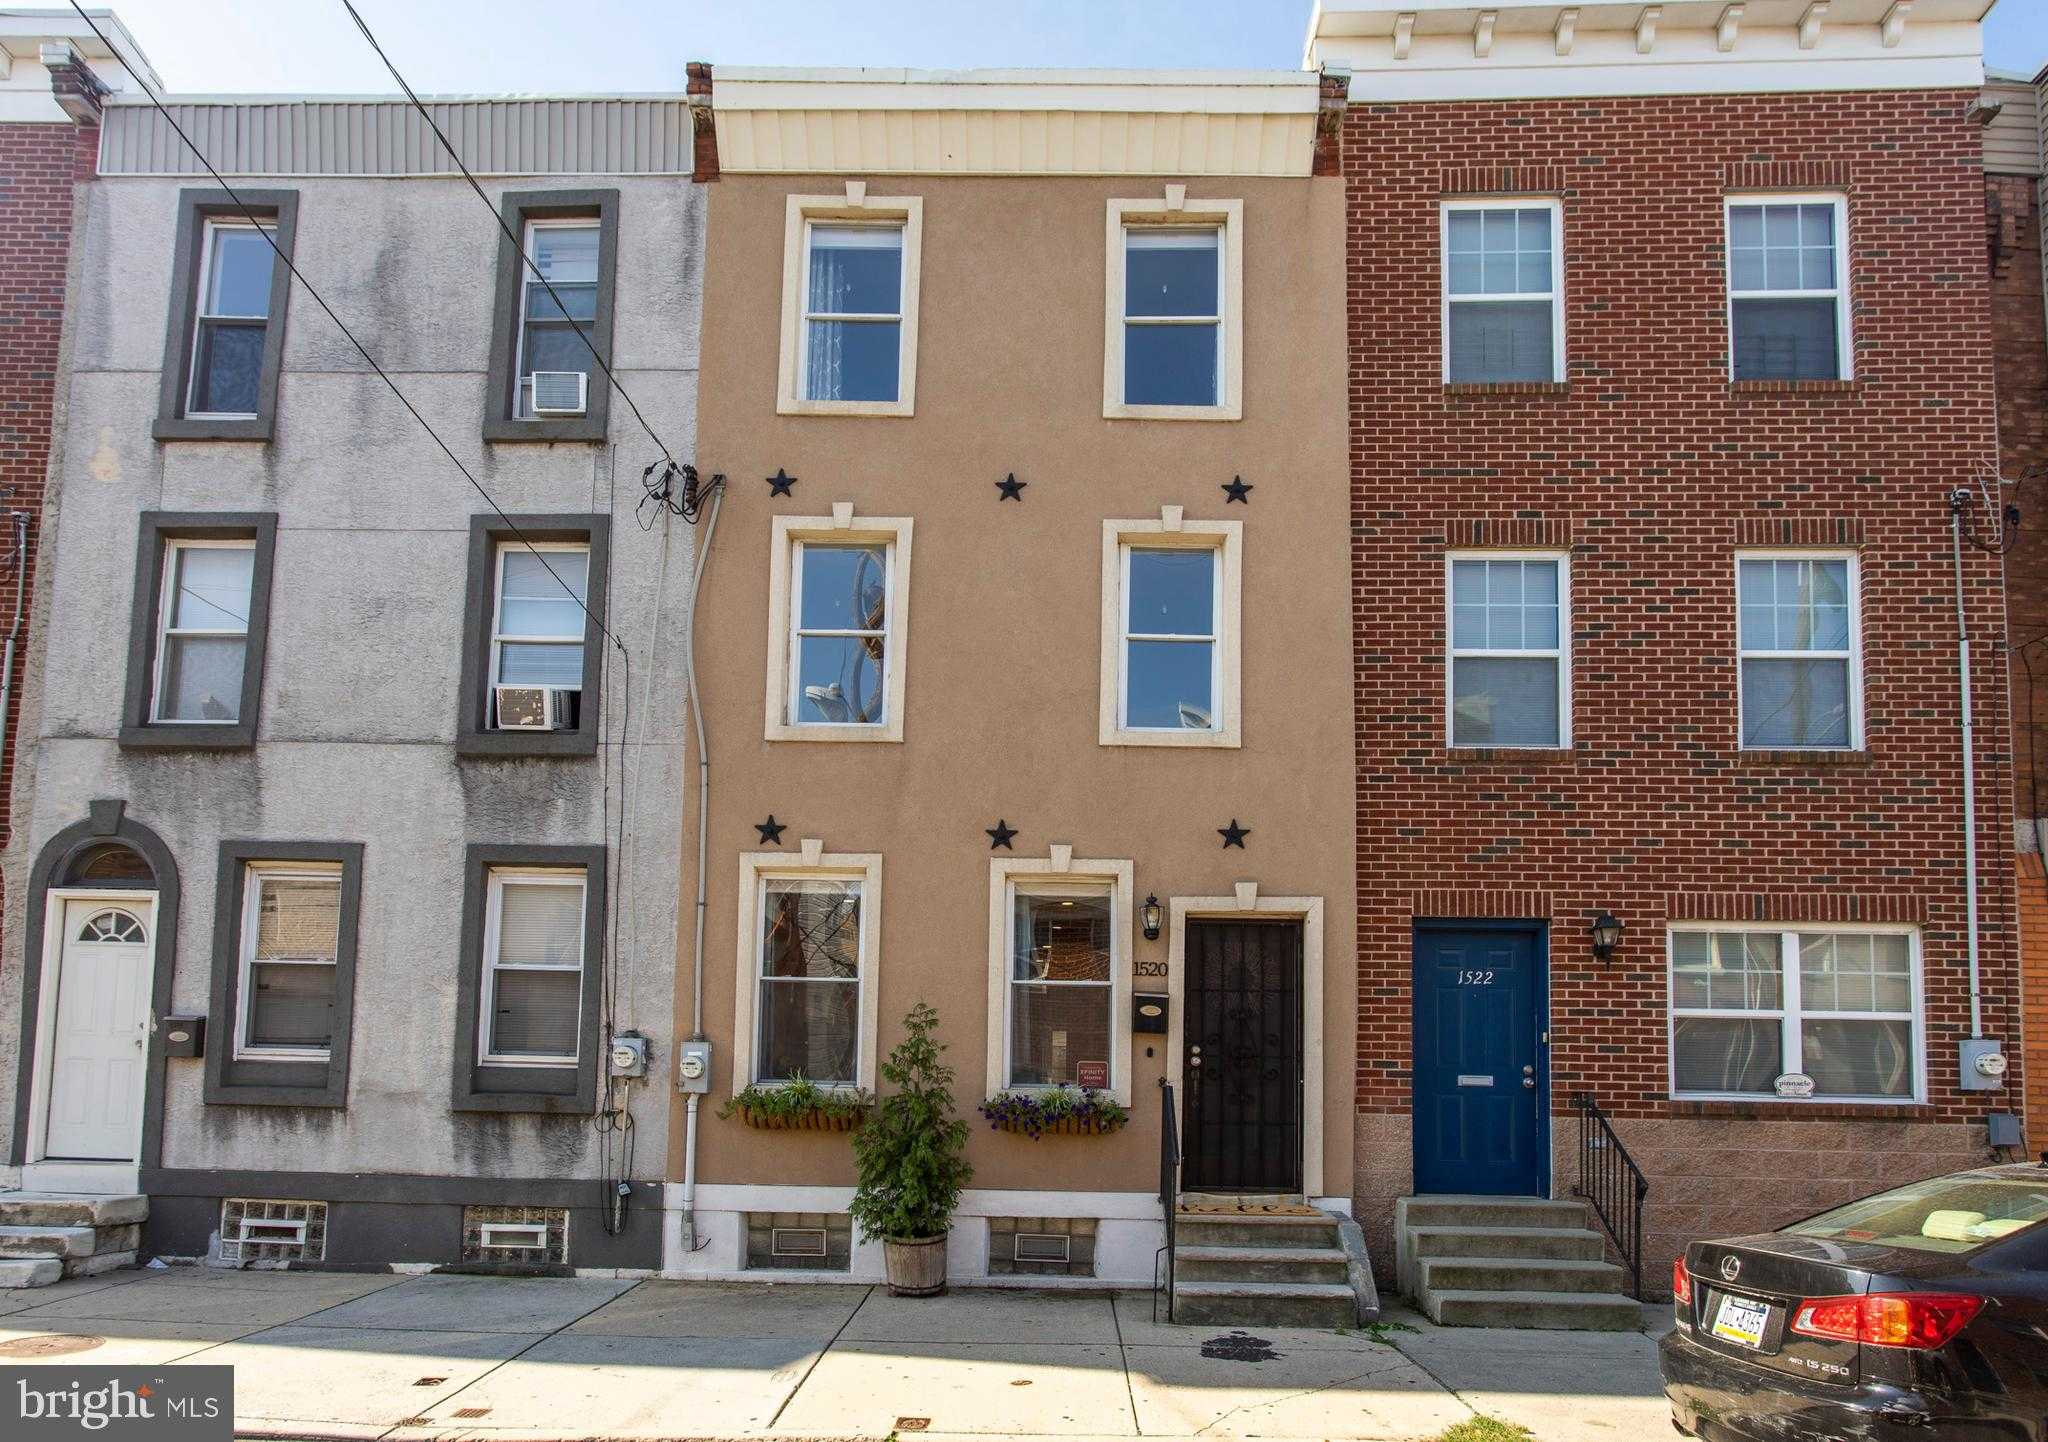 $375,000 - 3Br/2Ba -  for Sale in Newbold, Philadelphia